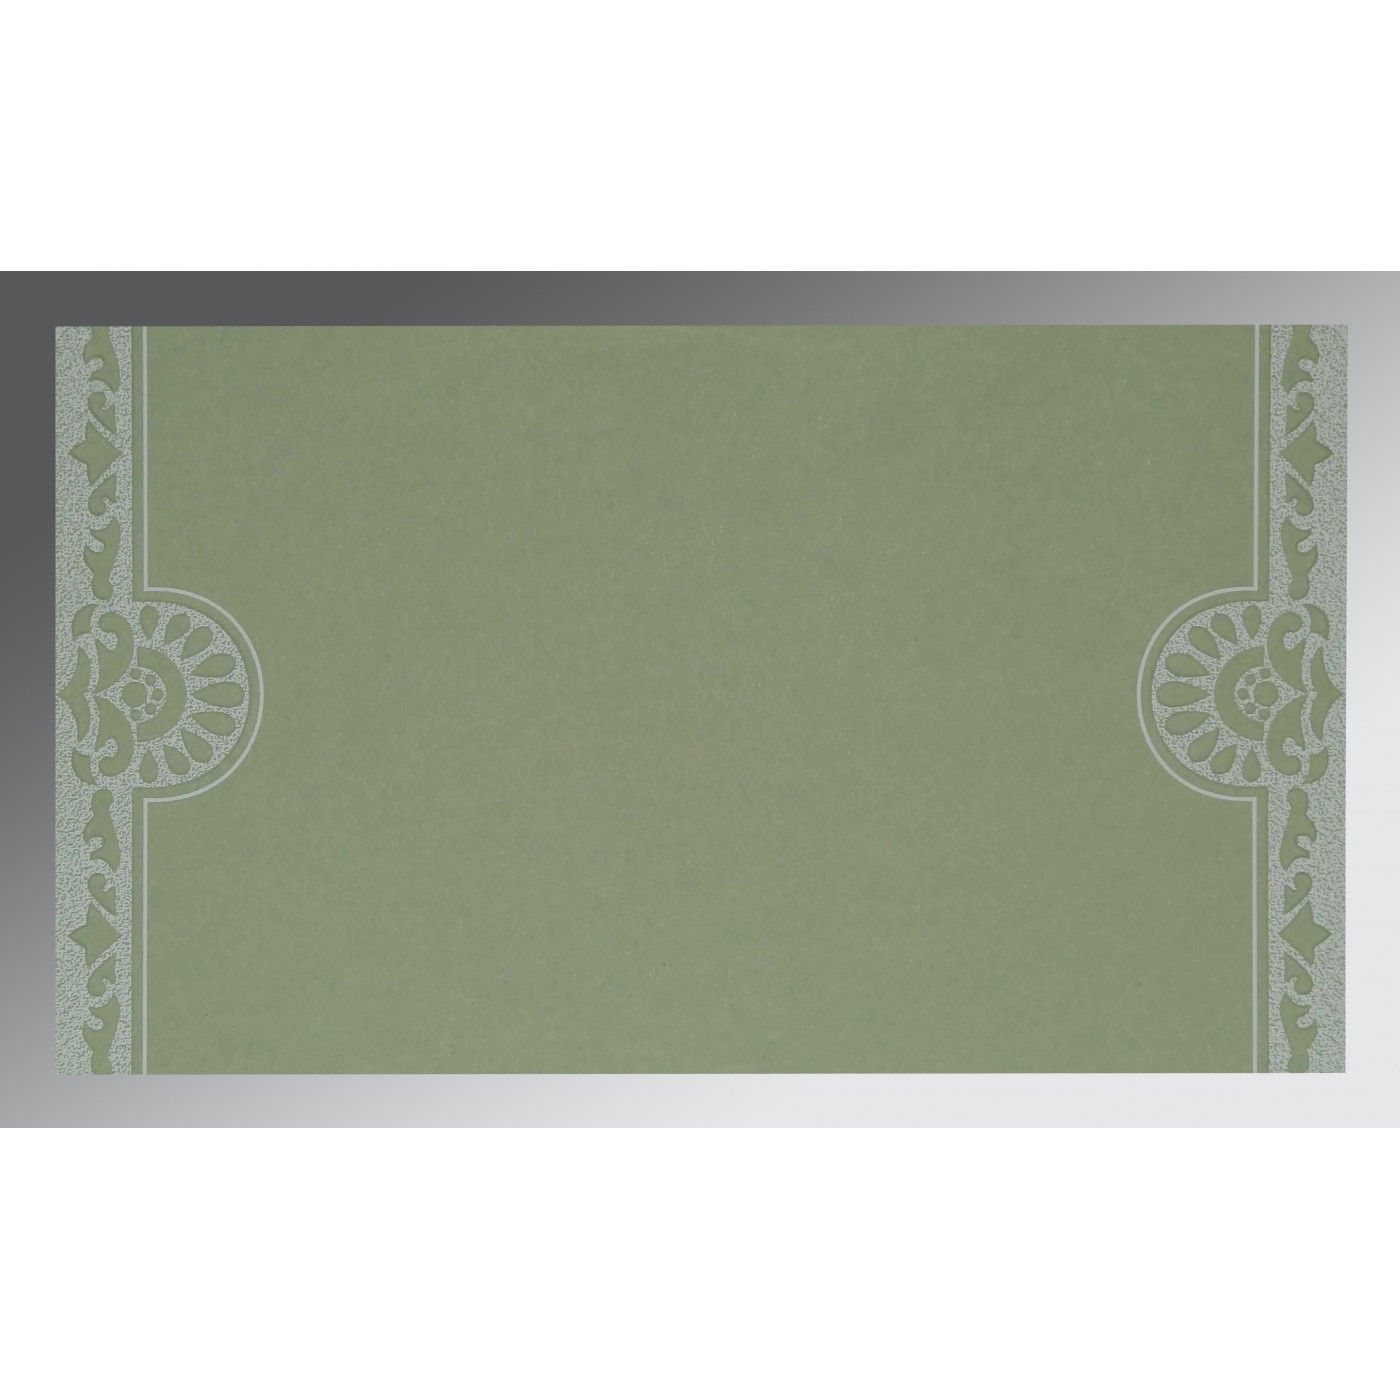 OFF-WHITE SHIMMERY FLORAL THEMED - SCREEN PRINTED WEDDING CARD : CS-8227J - IndianWeddingCards